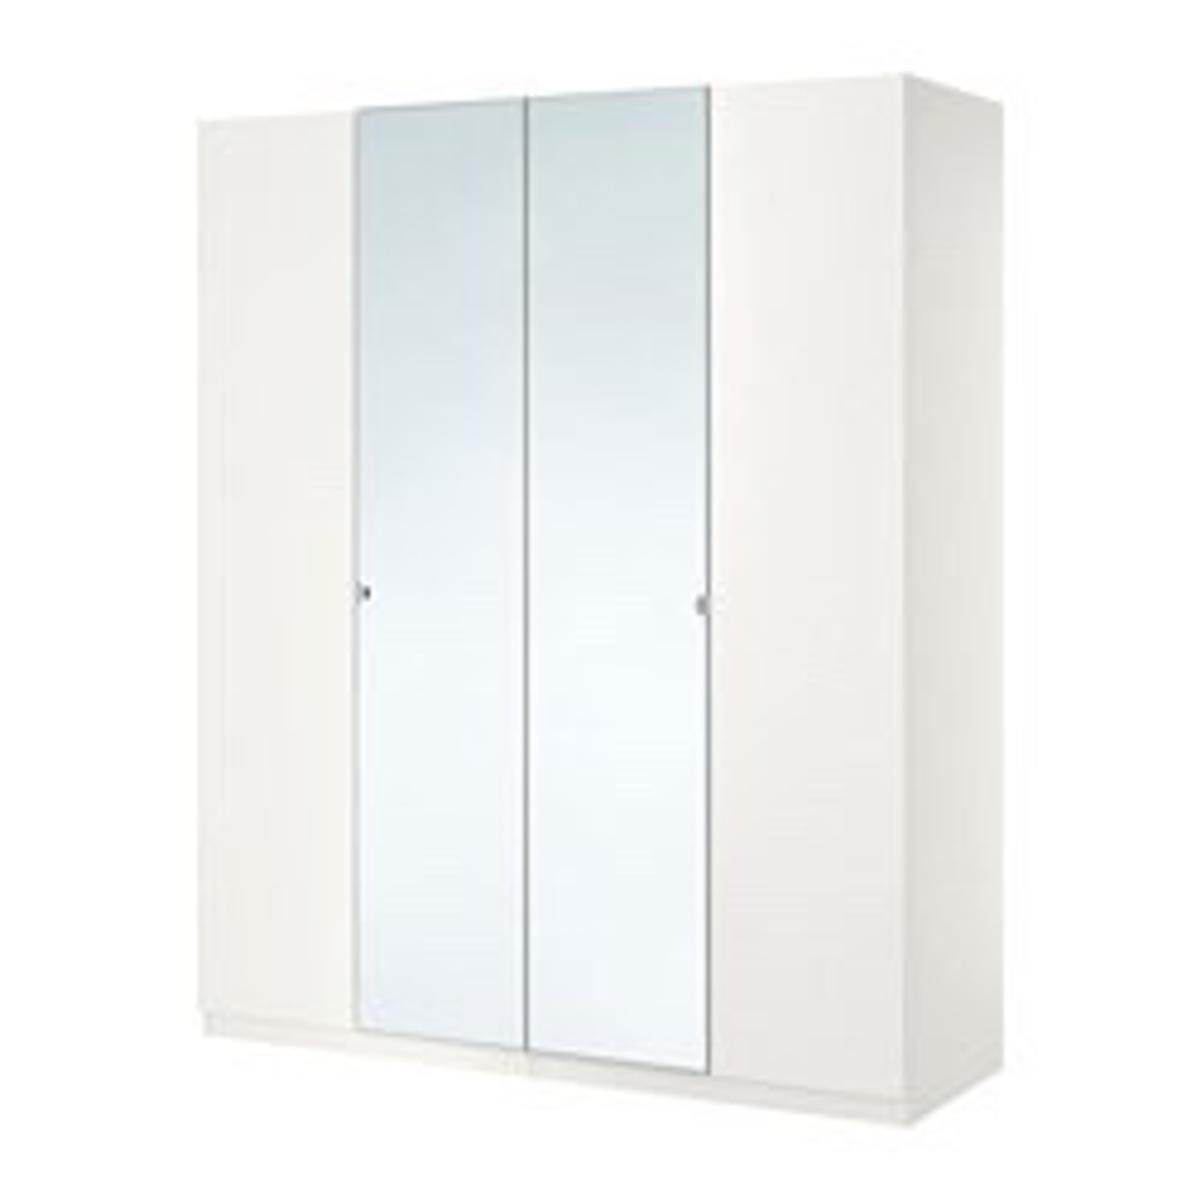 IKEA Pax wardrobe Vikedal mirror doors in for £40 00 for